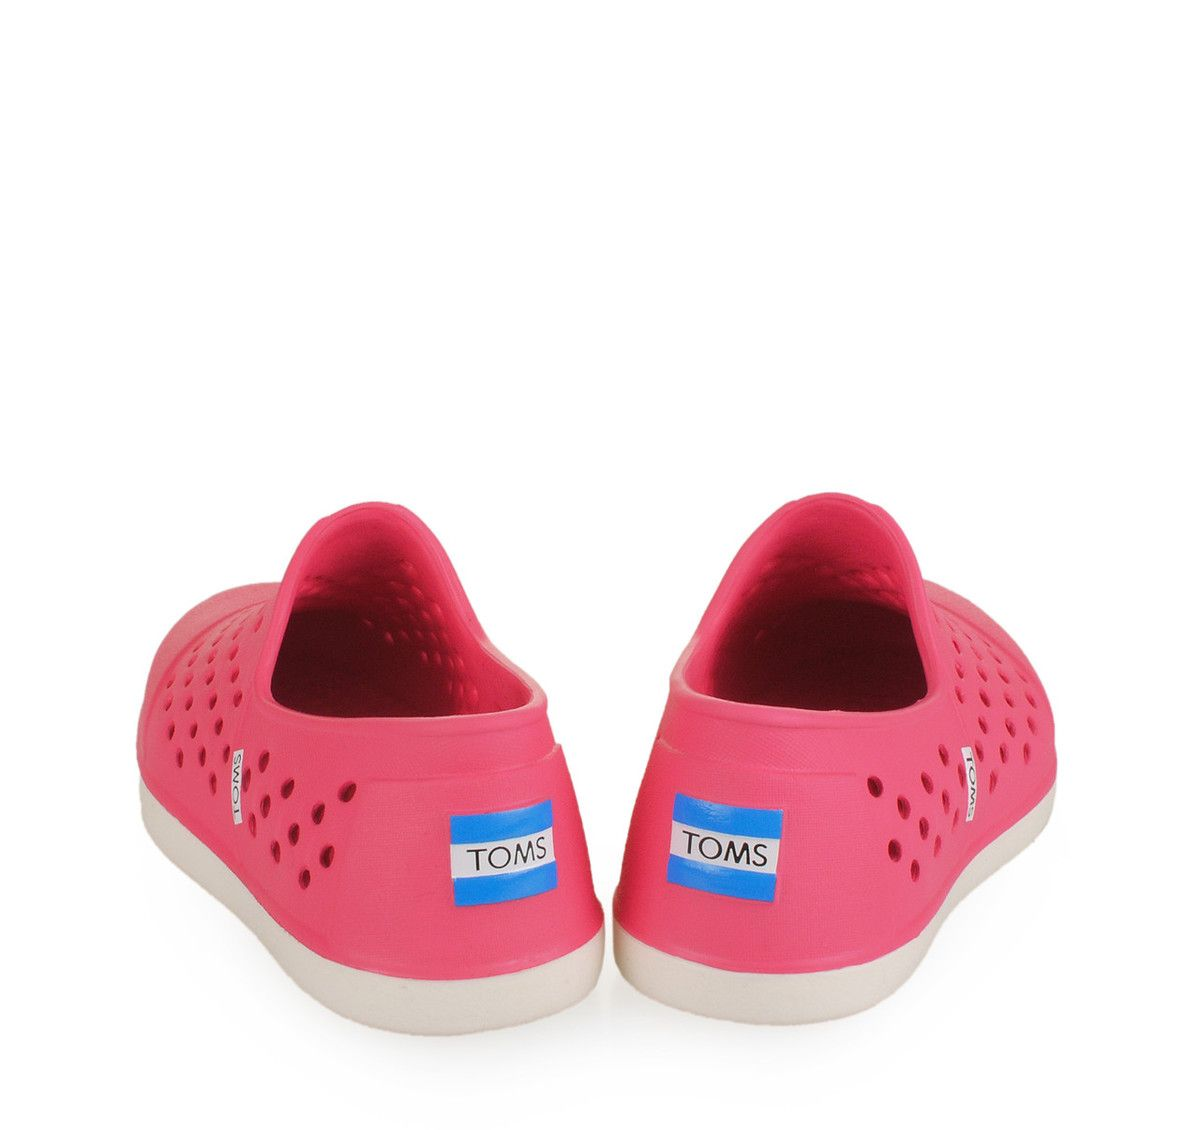 d9c96c3bc02 TOMS Pink RUbber Shoes for Girls. Παιδικά κοριτσίστικα λαστιχένια ροζ παπούτσια  θαλάσσης.